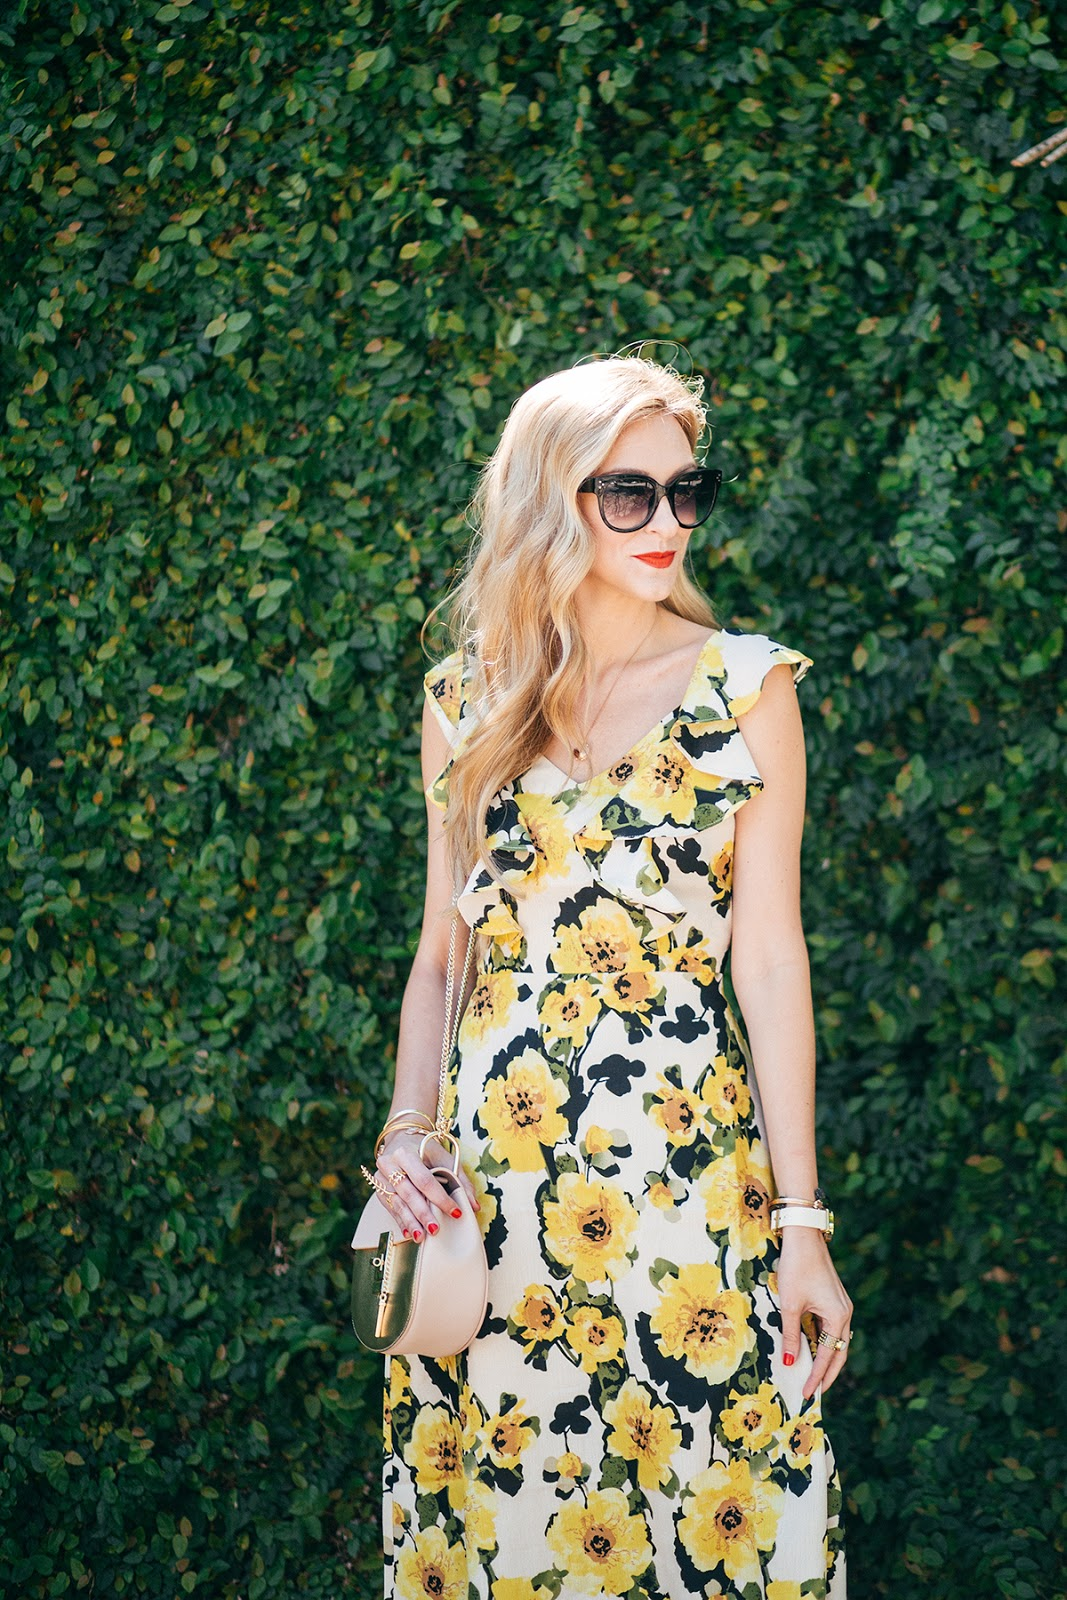 a sophisticated wedding guest dress for under $100